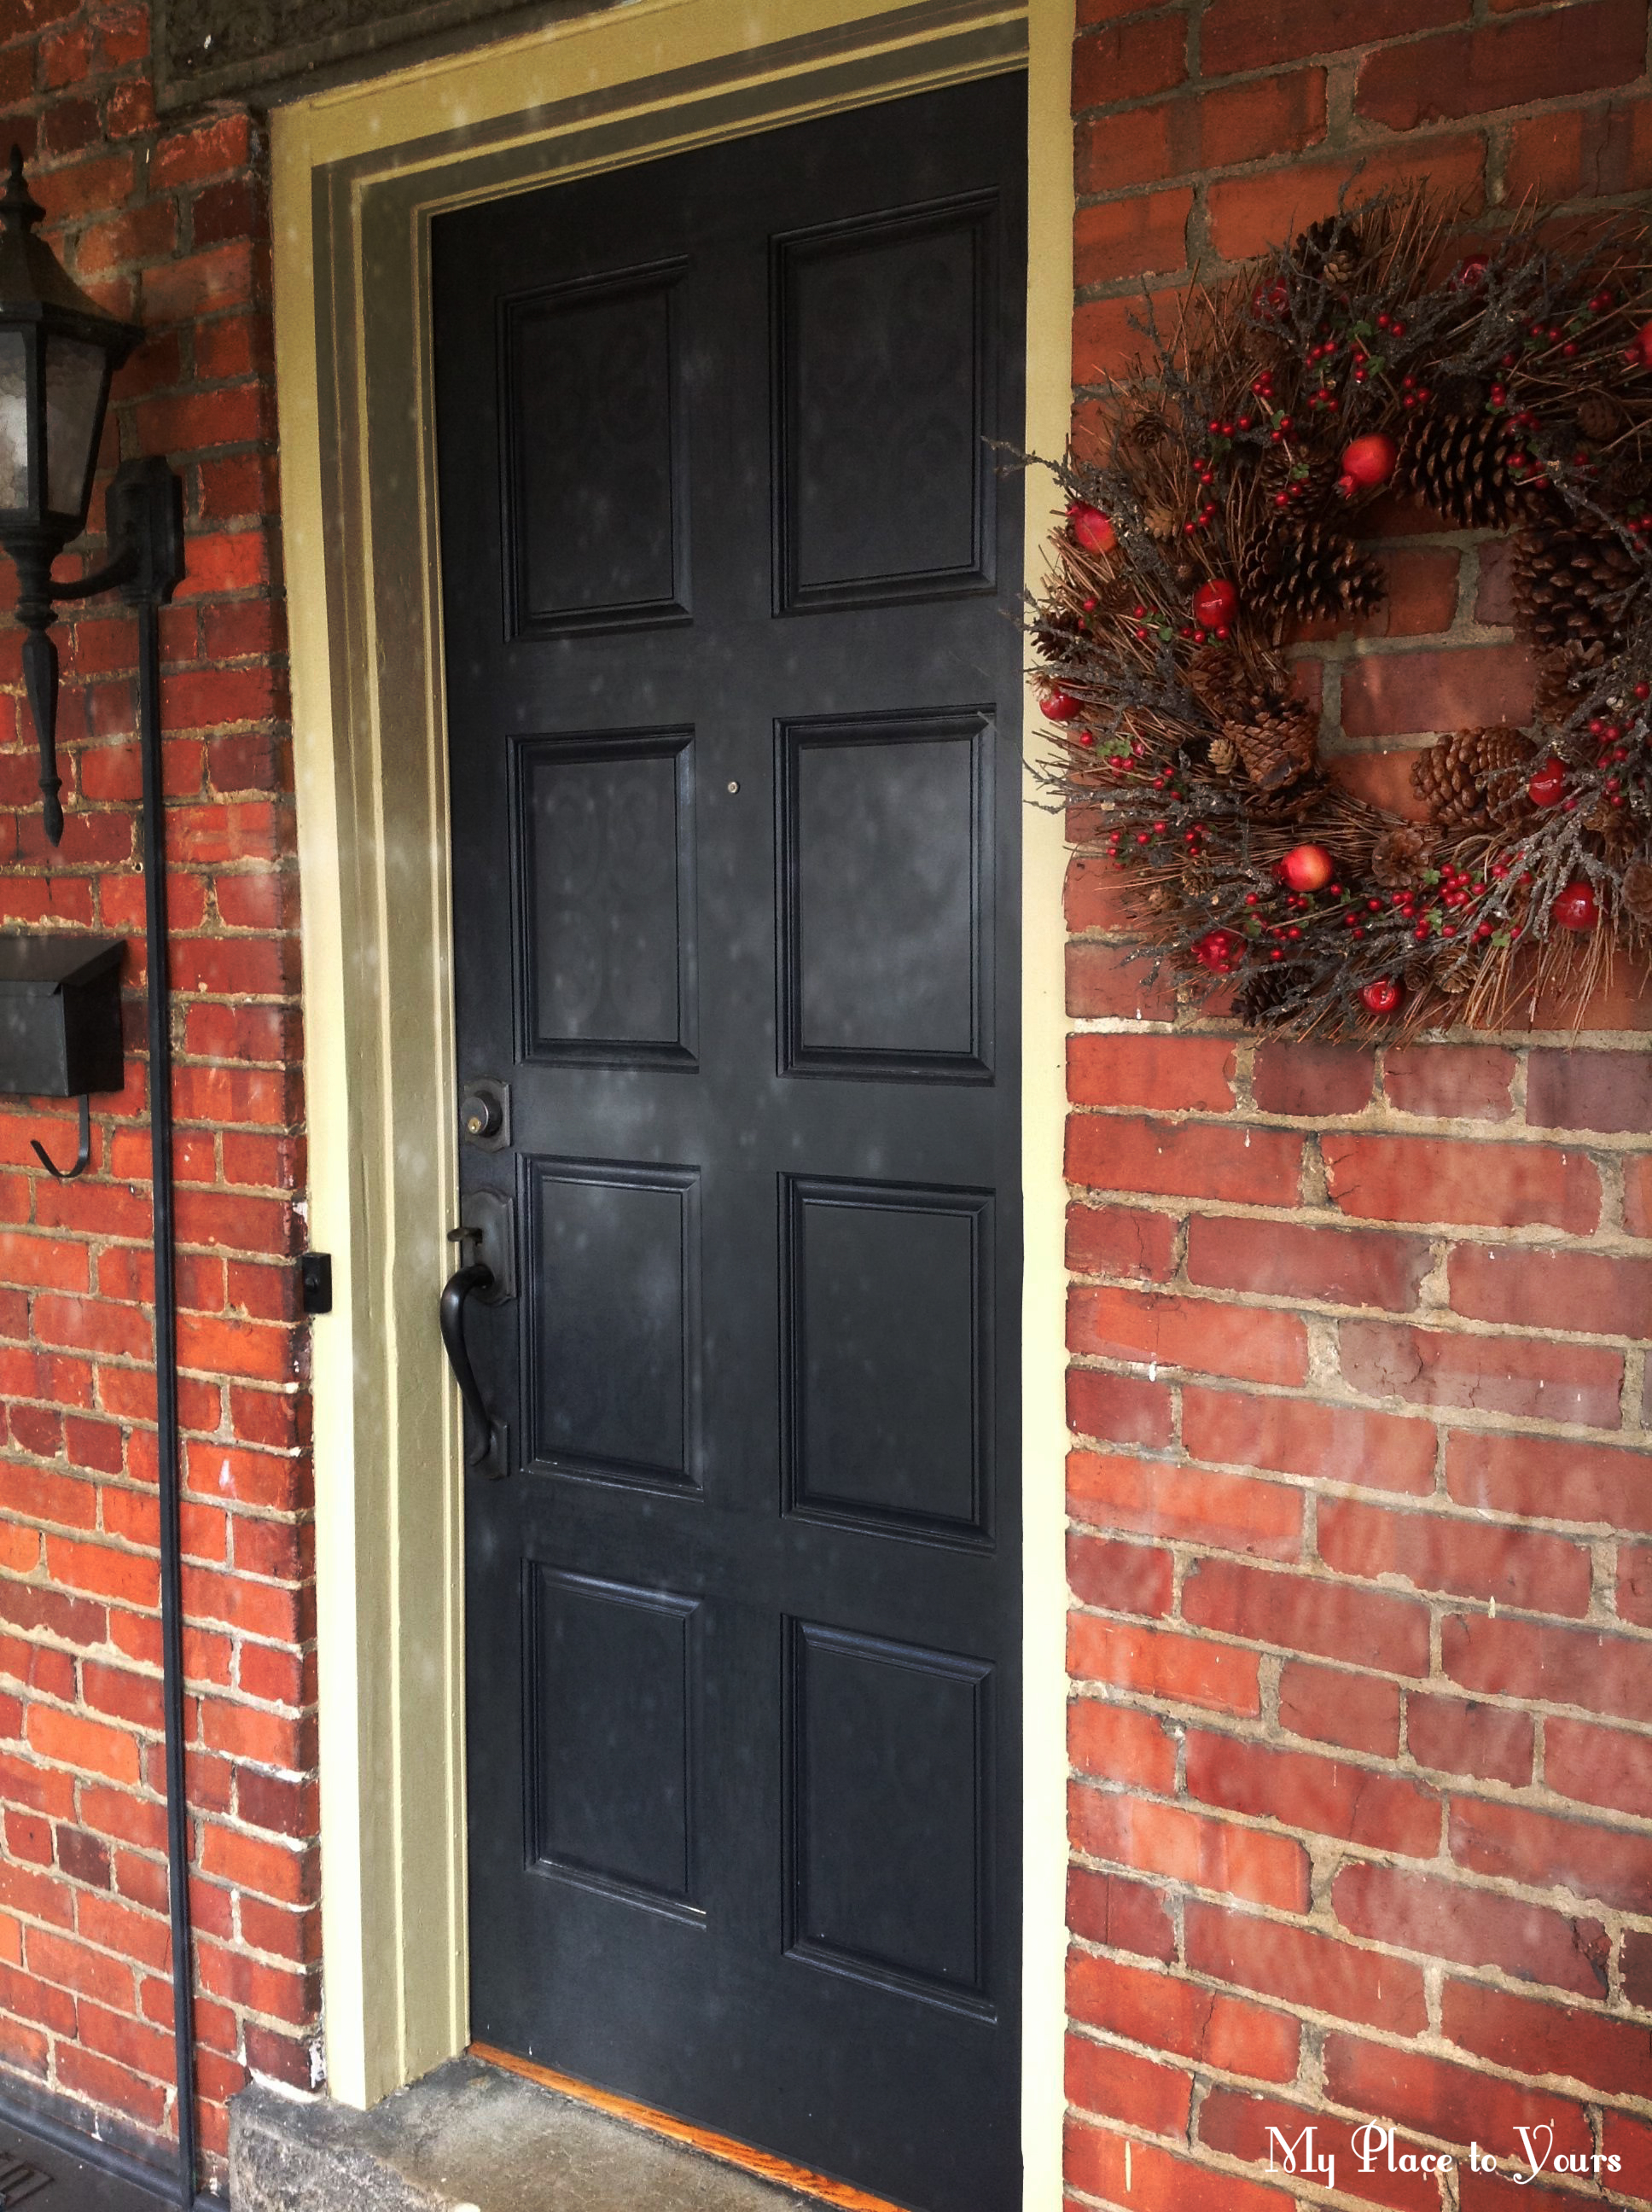 The Living Room Old House Renovation Story How To Repair A Doorknob Oldhouse Online Although This Has Some Victorian Details On Exterior Year 1907 Here In East Tennessee Was Time Of Architectural Transitionmoving